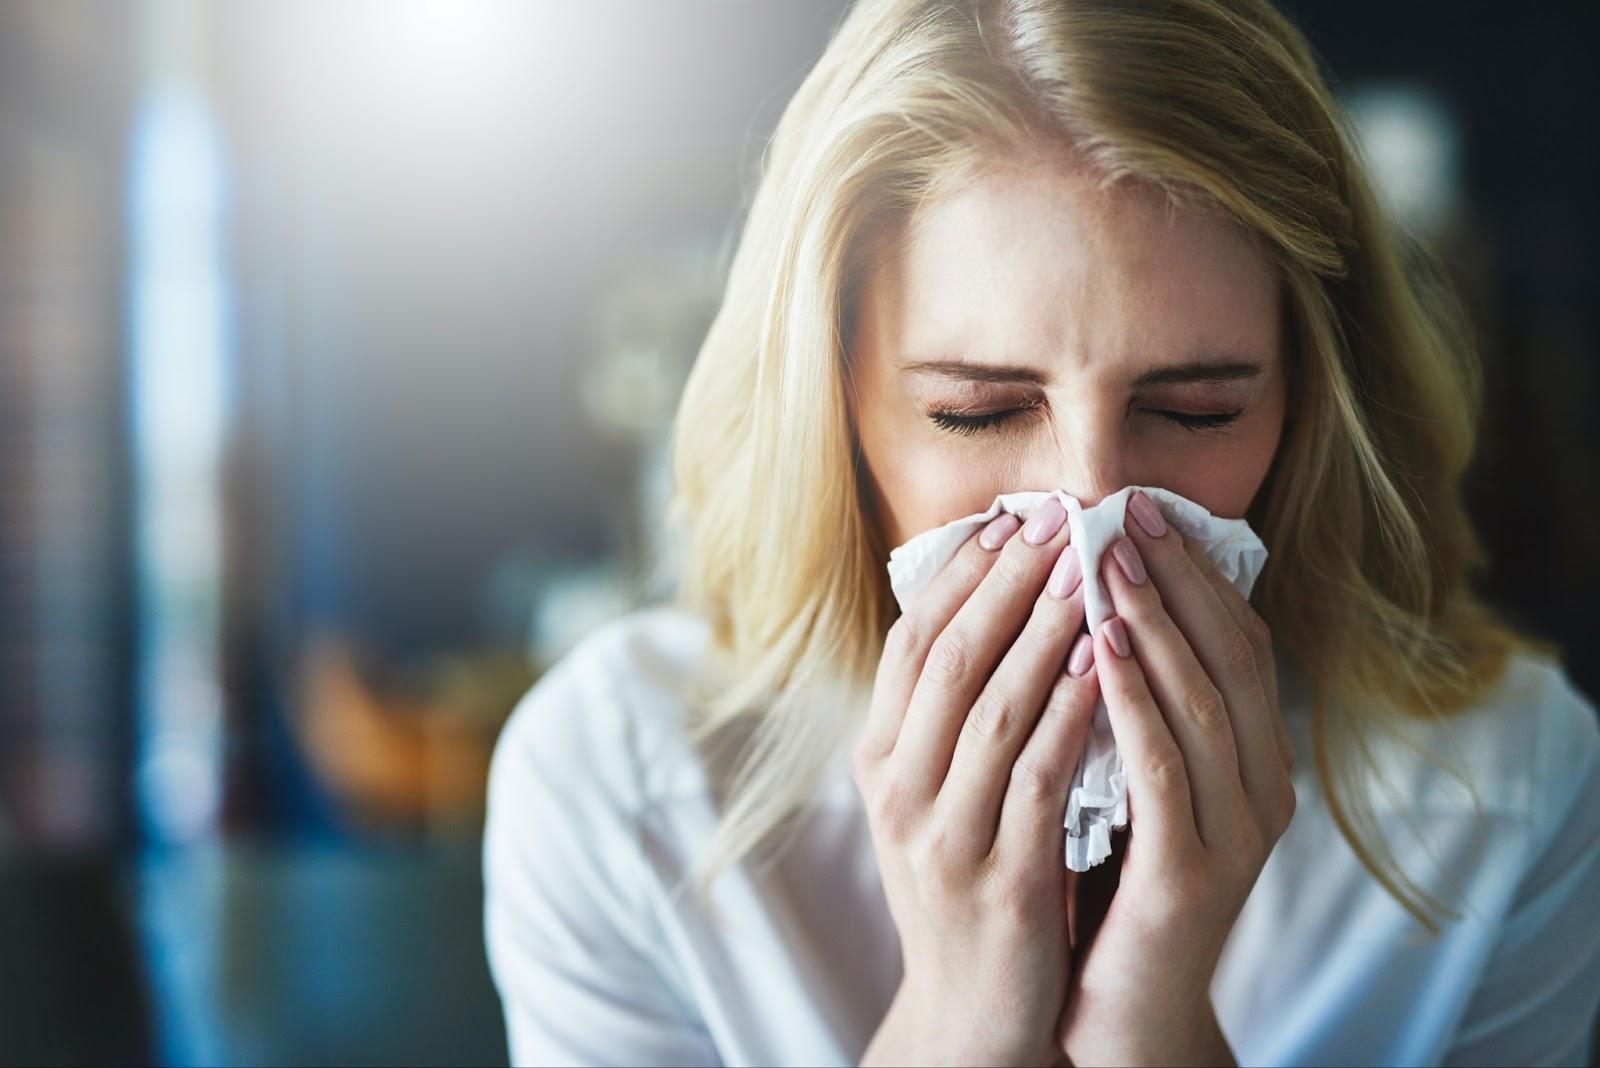 What do sinuses do?